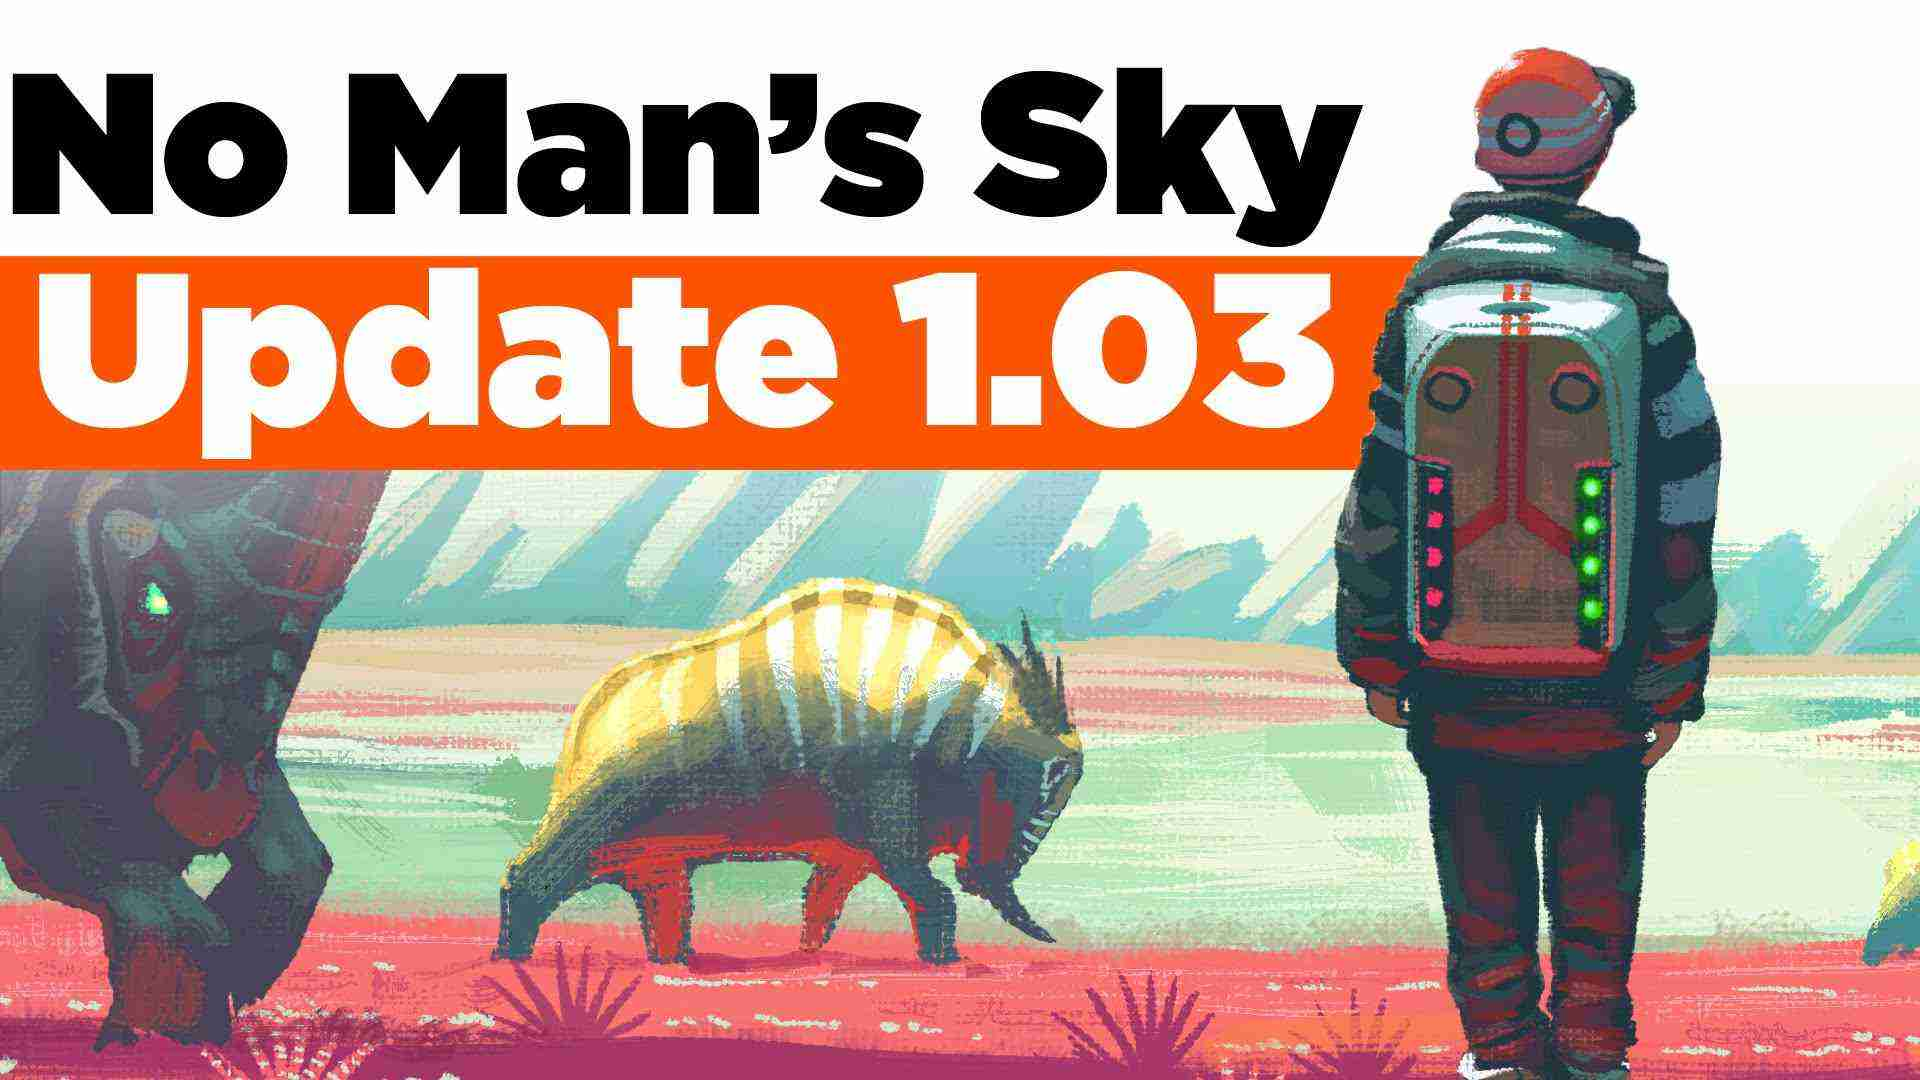 No Man's Sky Update 1.03 Details – Inside Gaming Daily